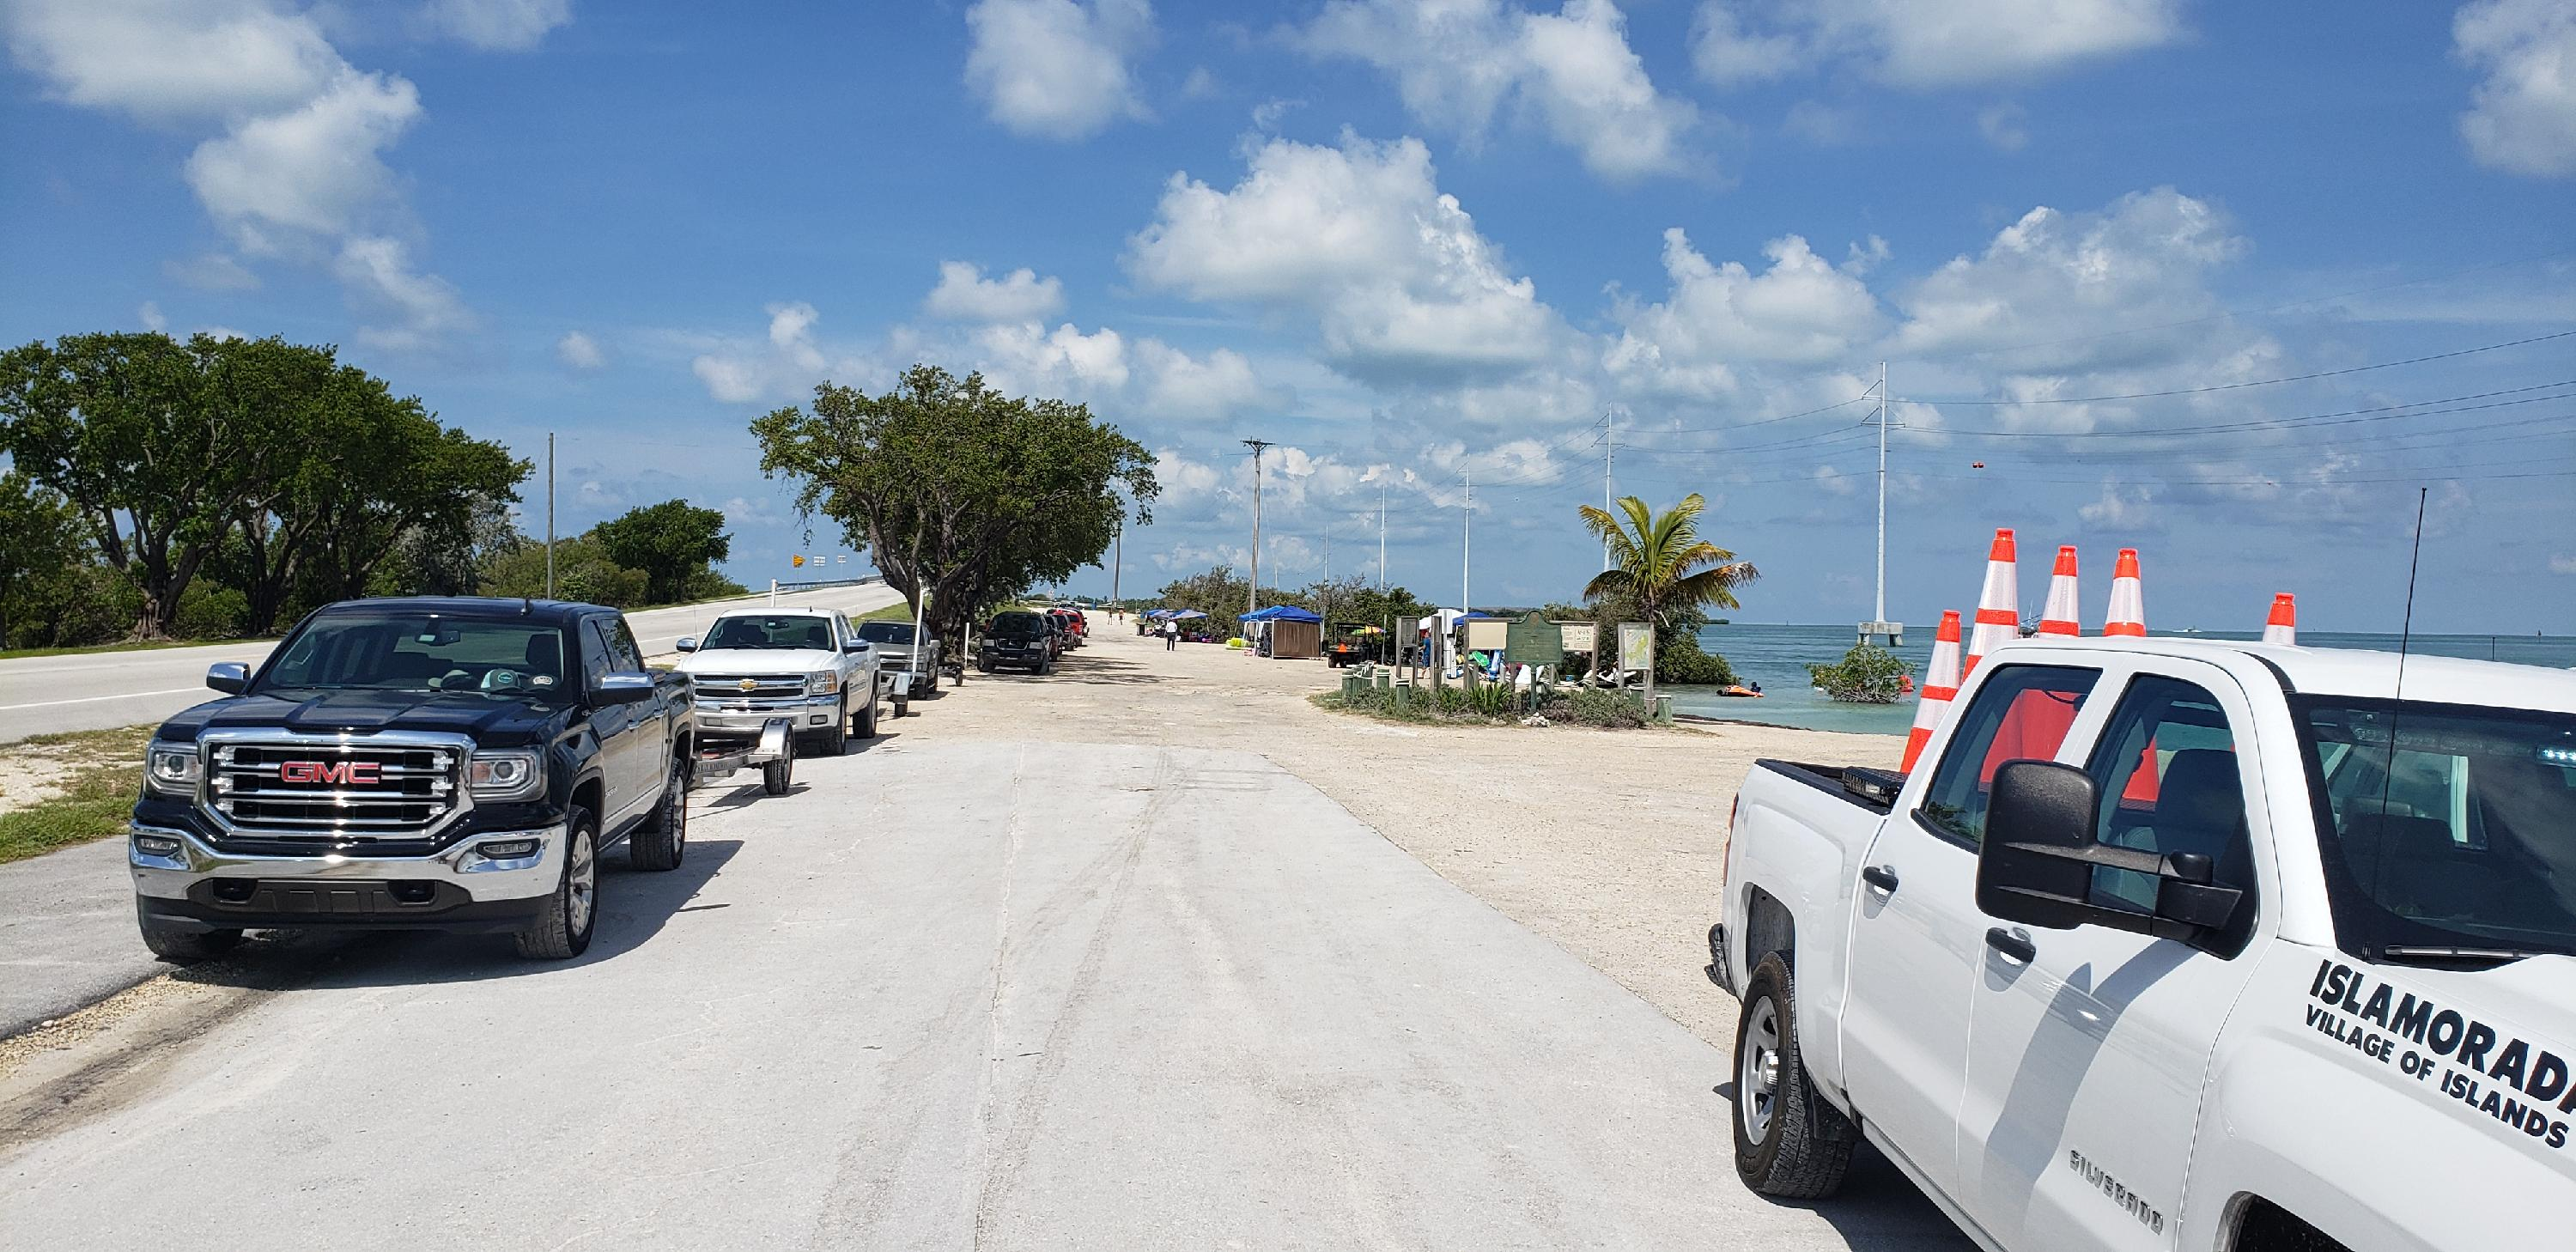 20190704_parking at boat ramp